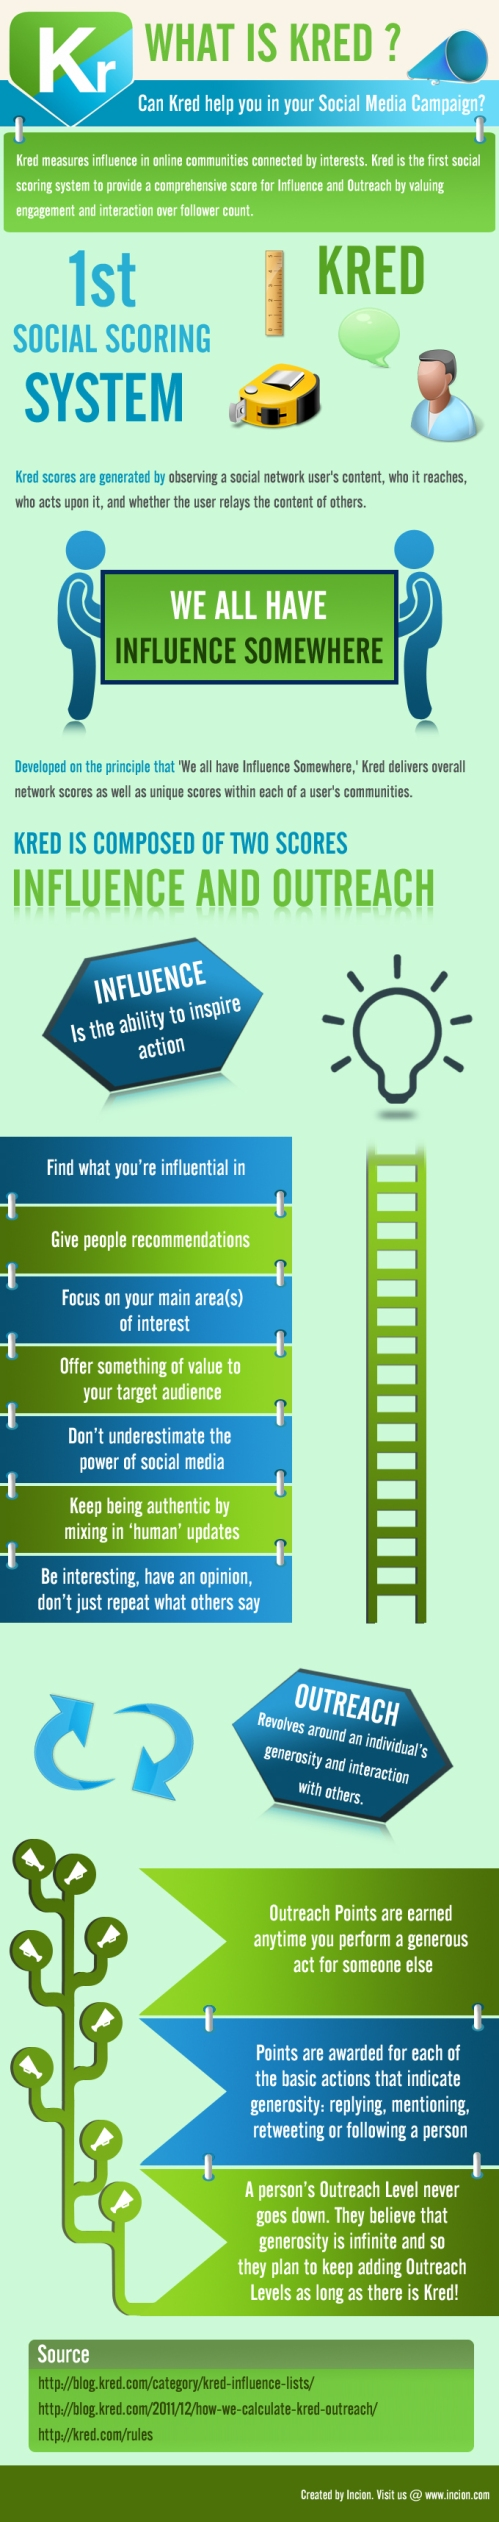 what-is-kred-can-kred-help-you-in-your-social-media-campaign_516e487b1715d